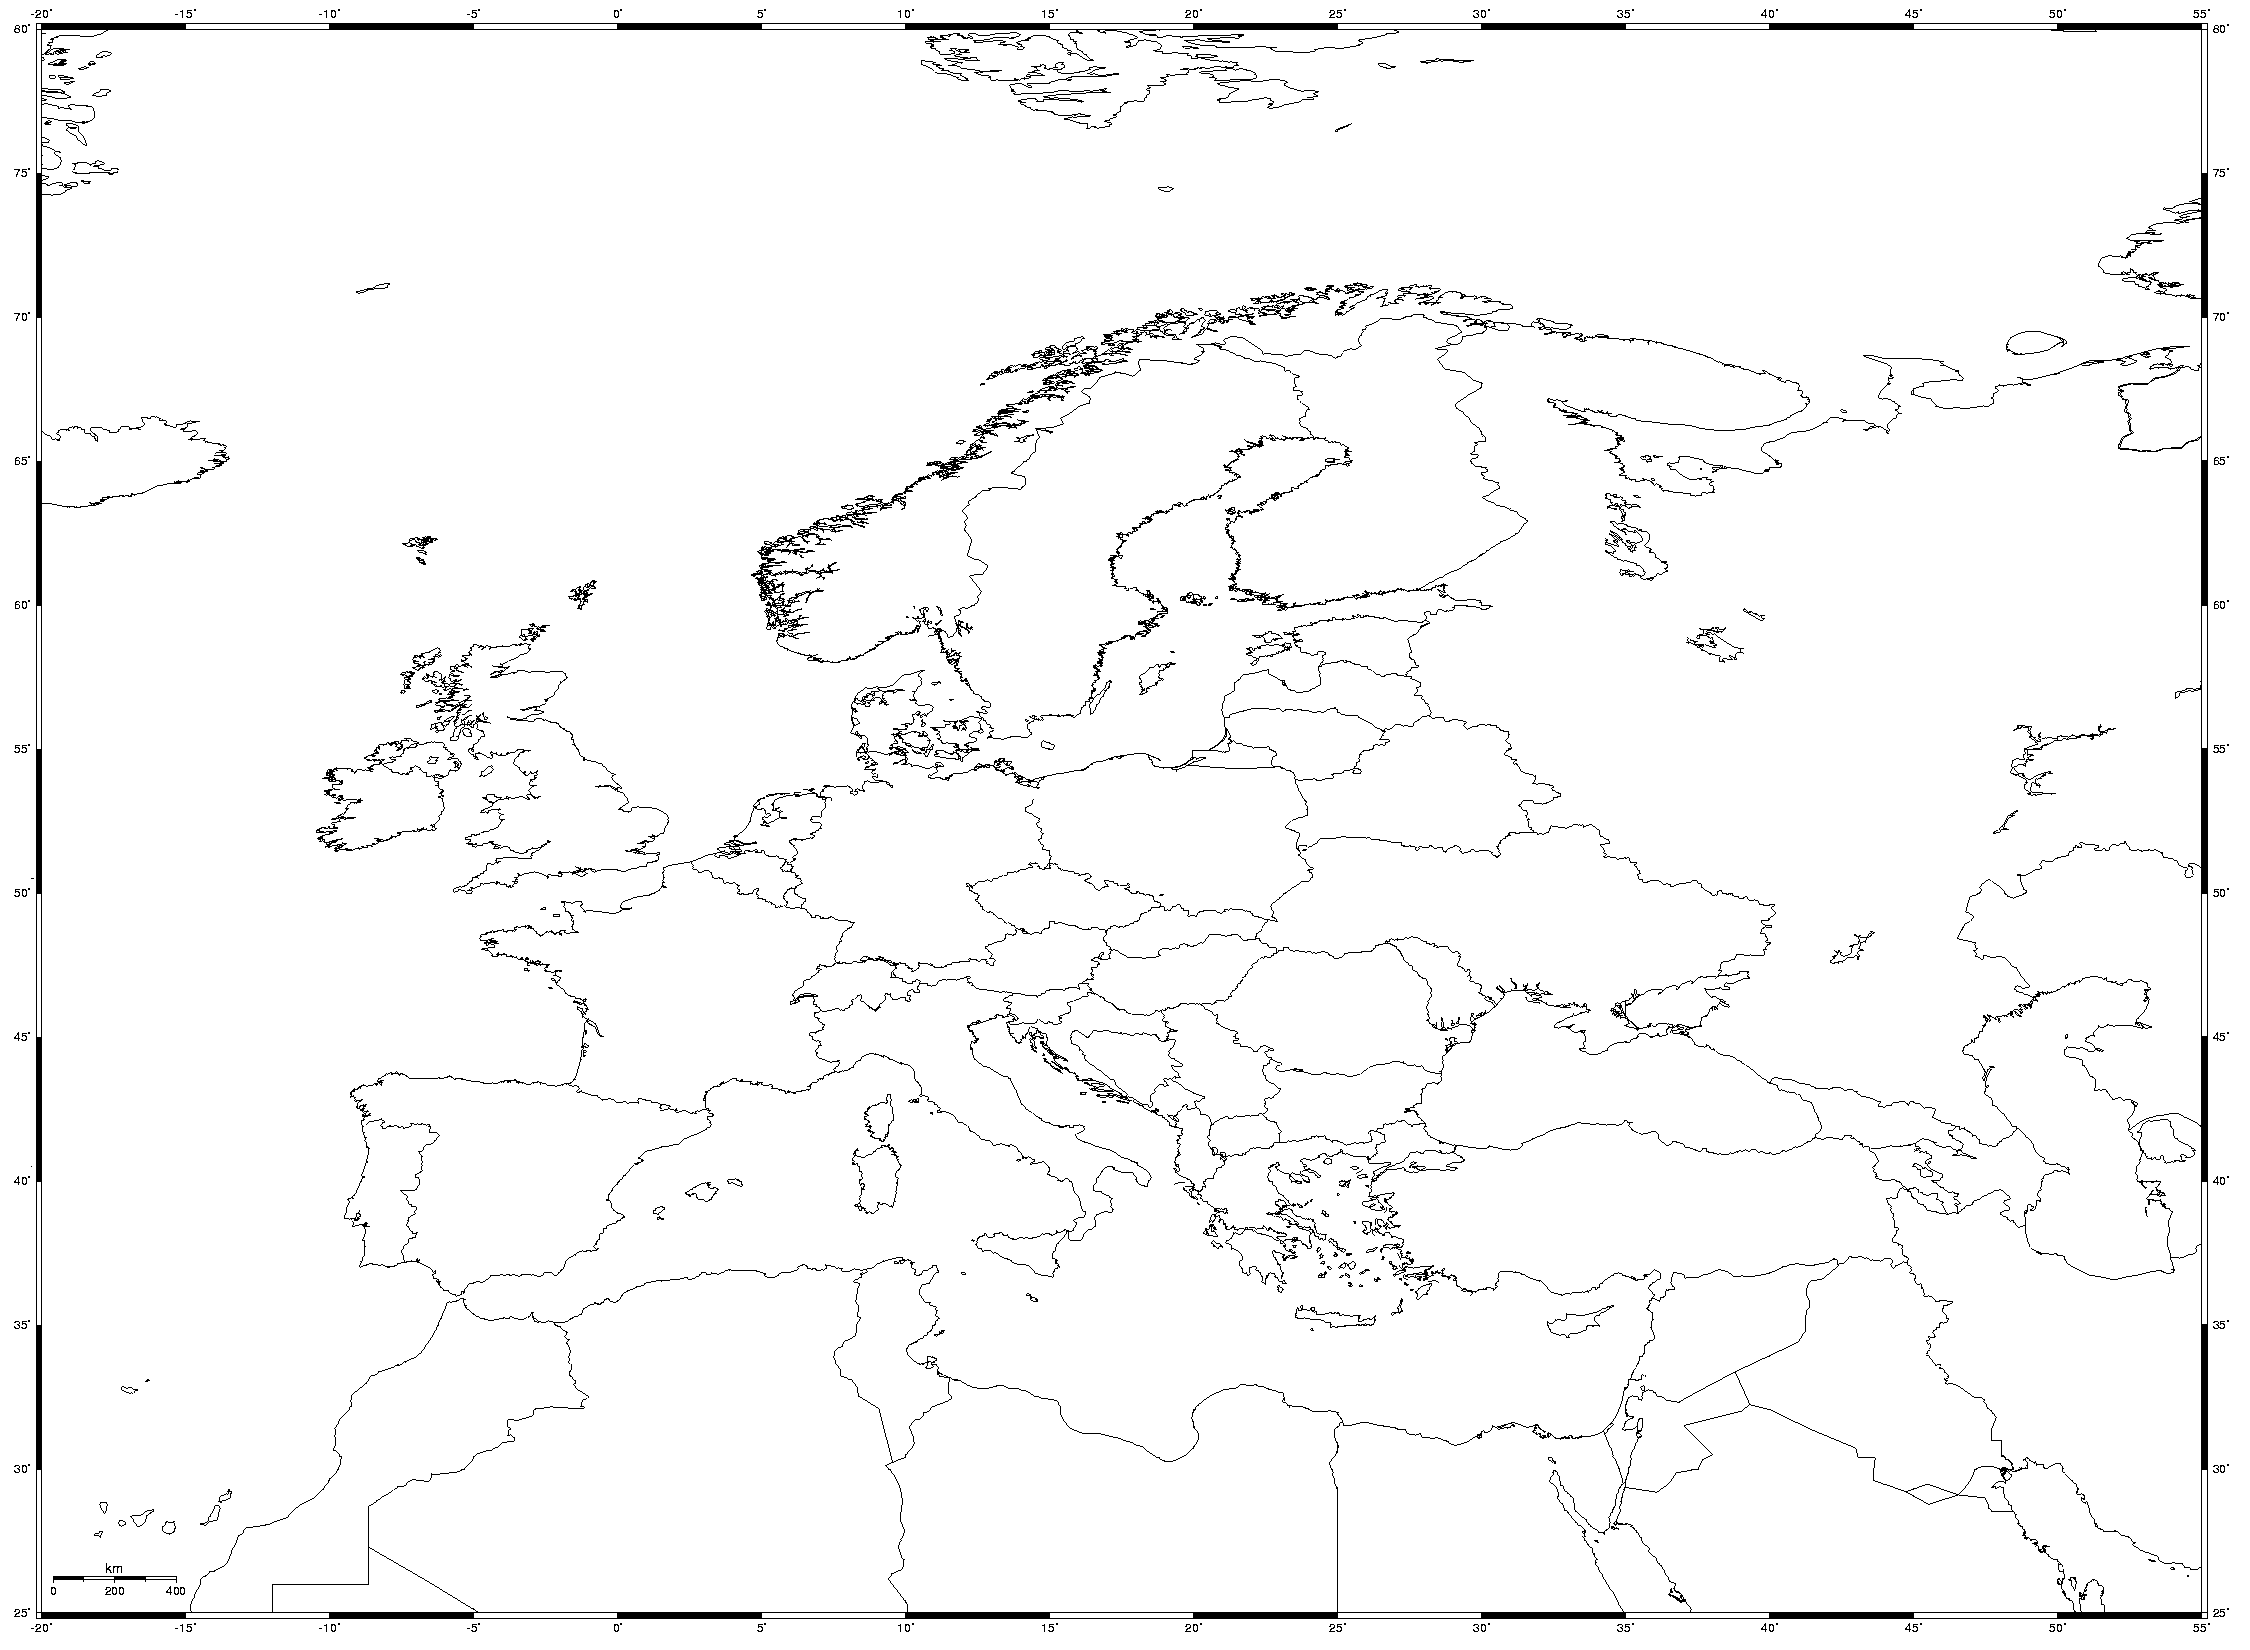 Equidistant Cylindrical Blank Map Of Europe Mapsof